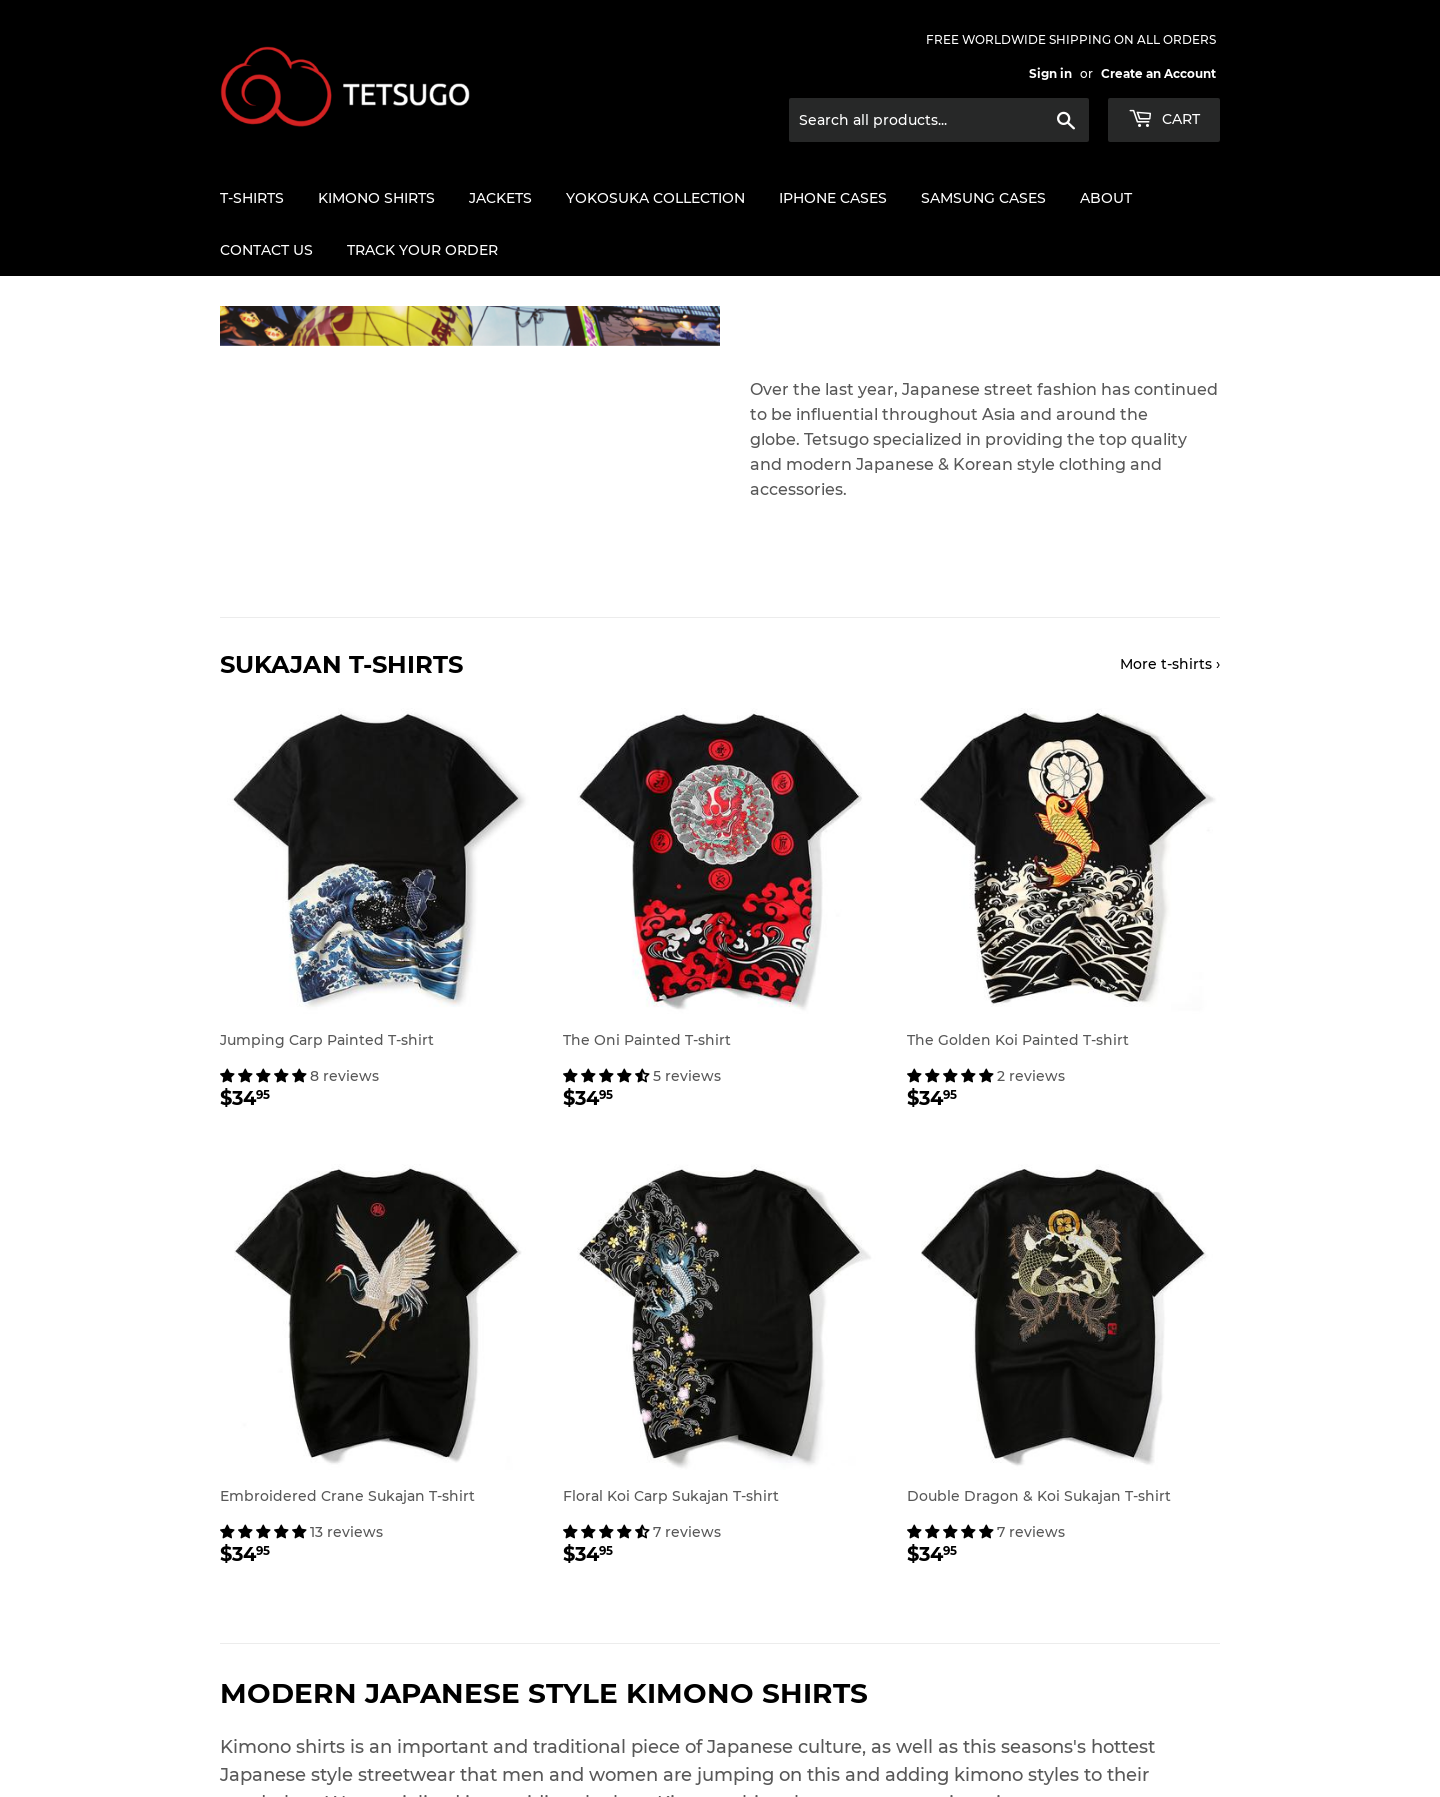 d5e94f9ddb07 tetsugo | Sold Store | Fashion and apparel Business